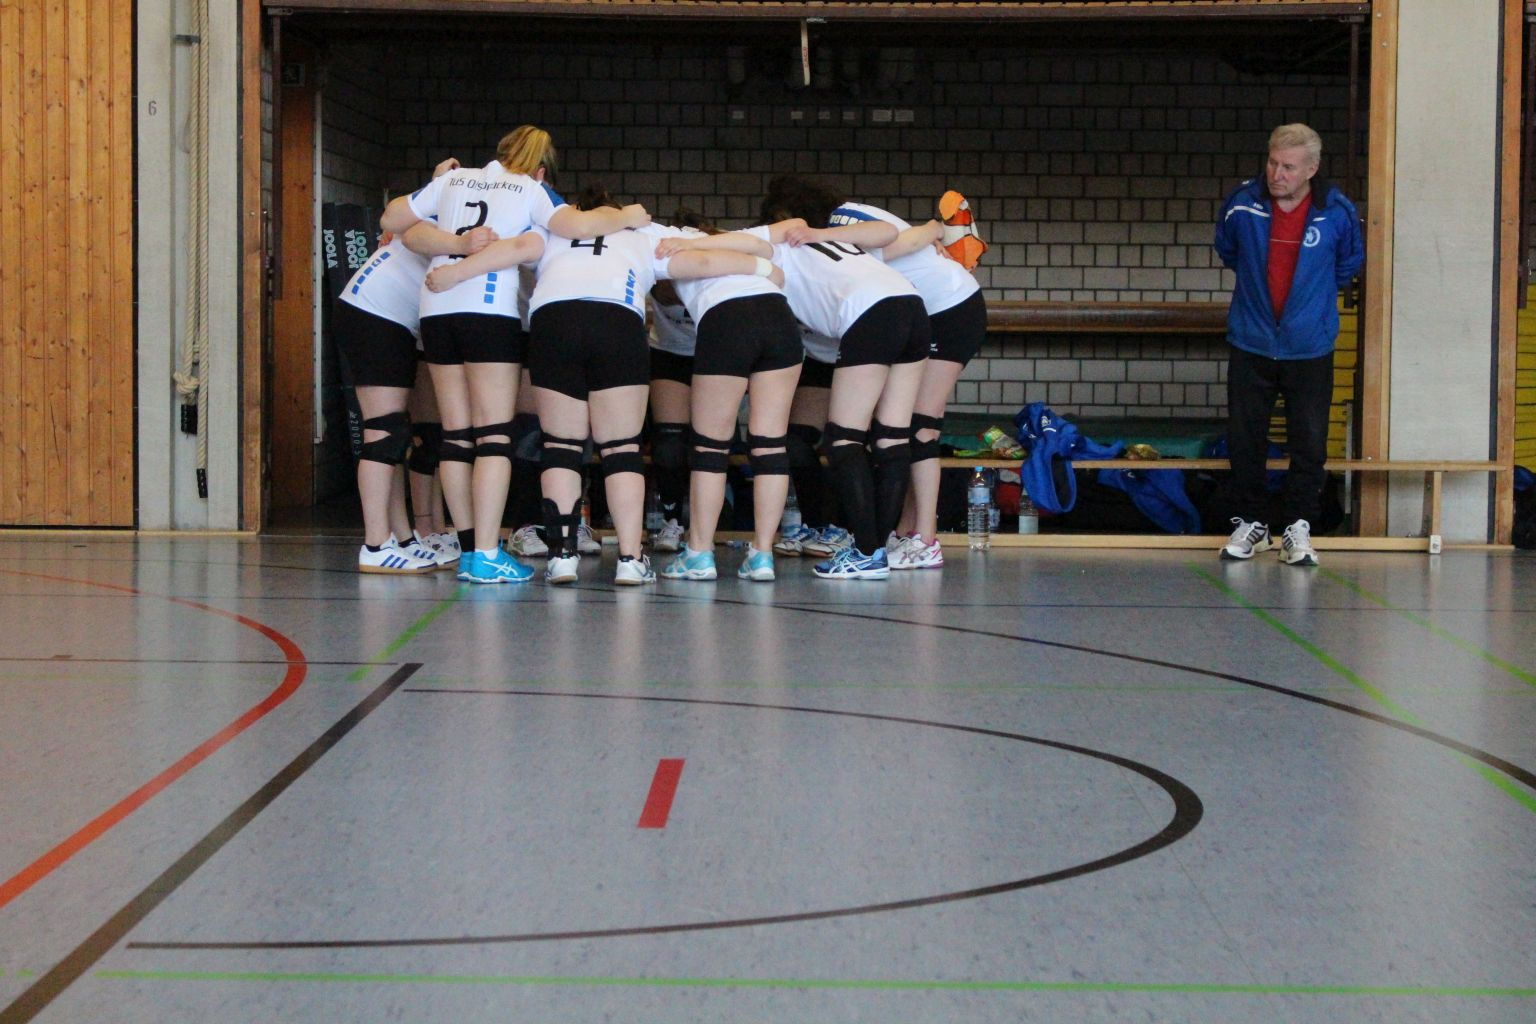 170325_Volleyball_IMG_4161